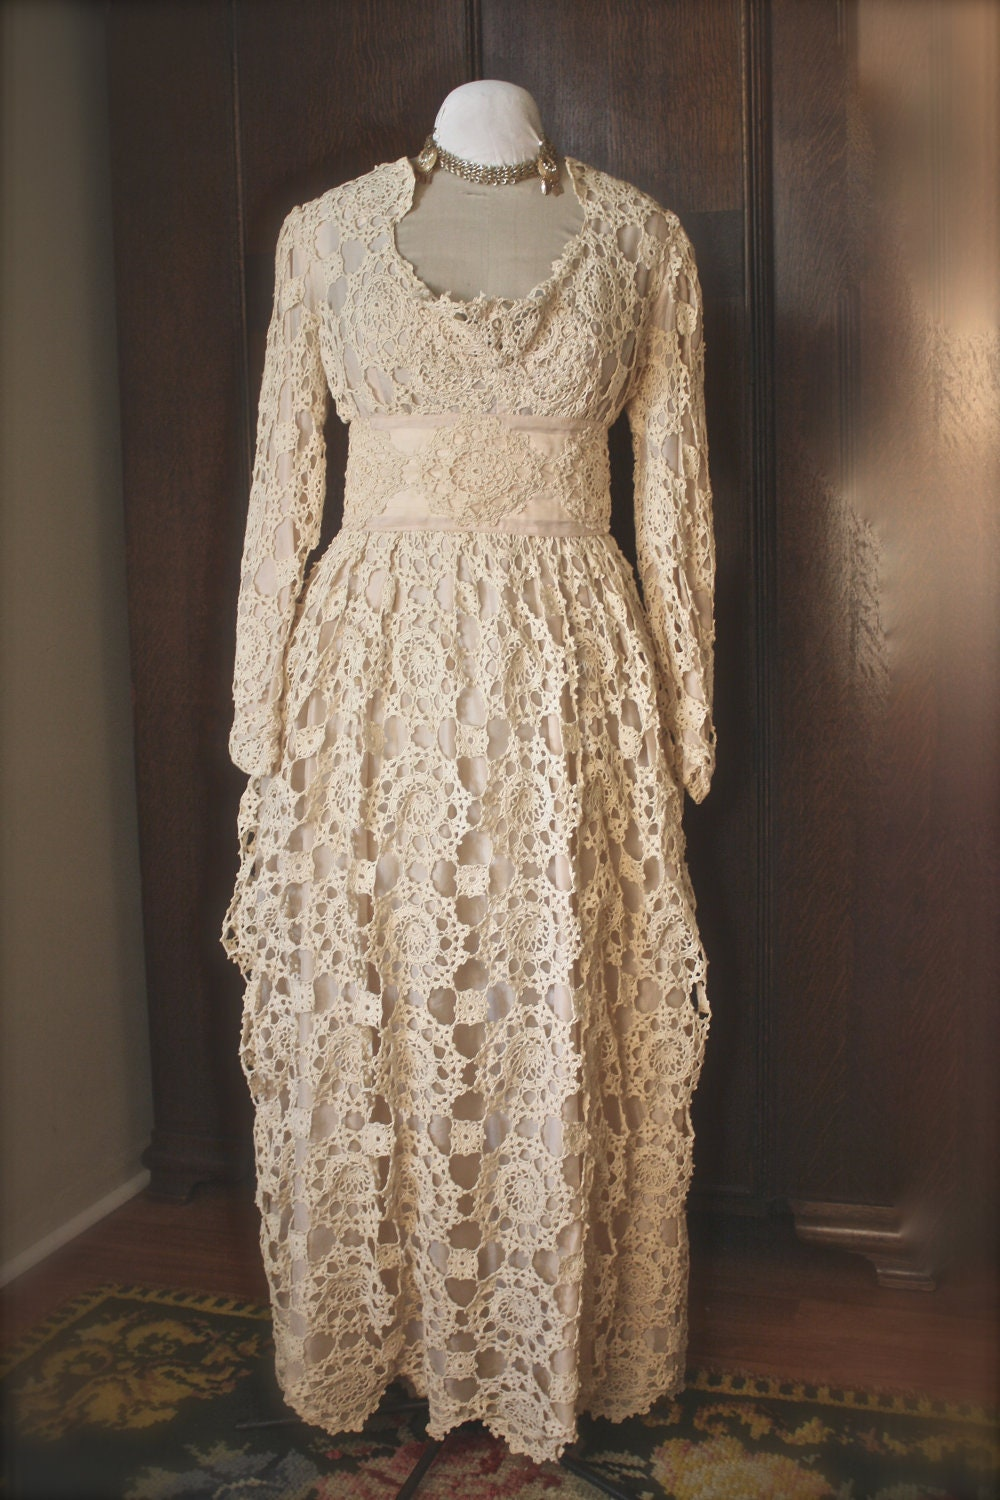 Antique Crochet Wedding Dress Sale By Objectsbyechoes On Etsy